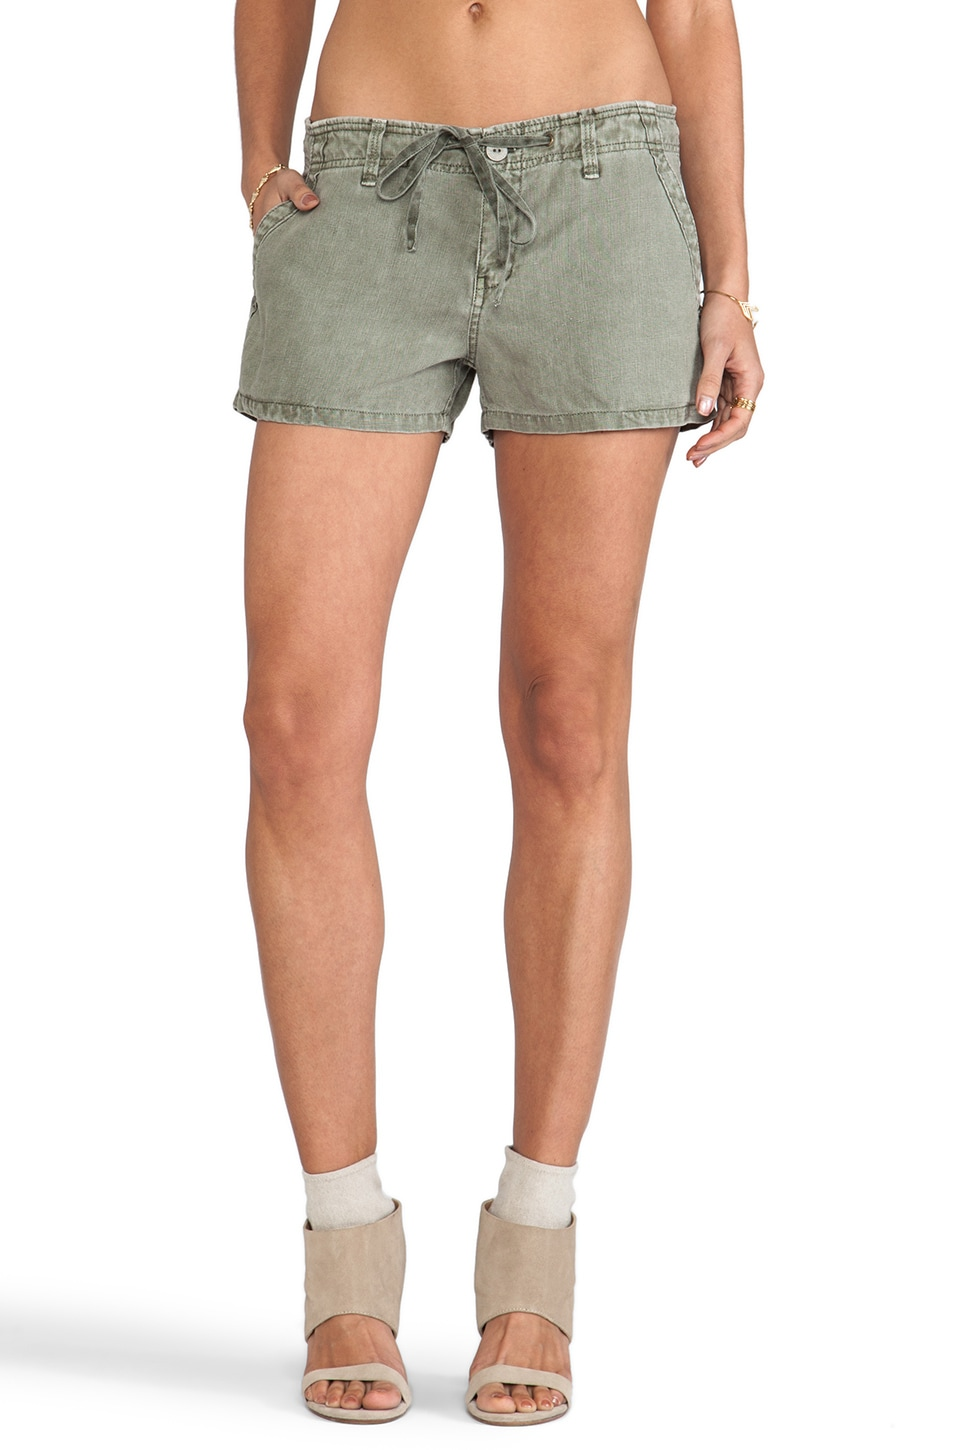 Sanctuary Surf Shorts in Cactus Green